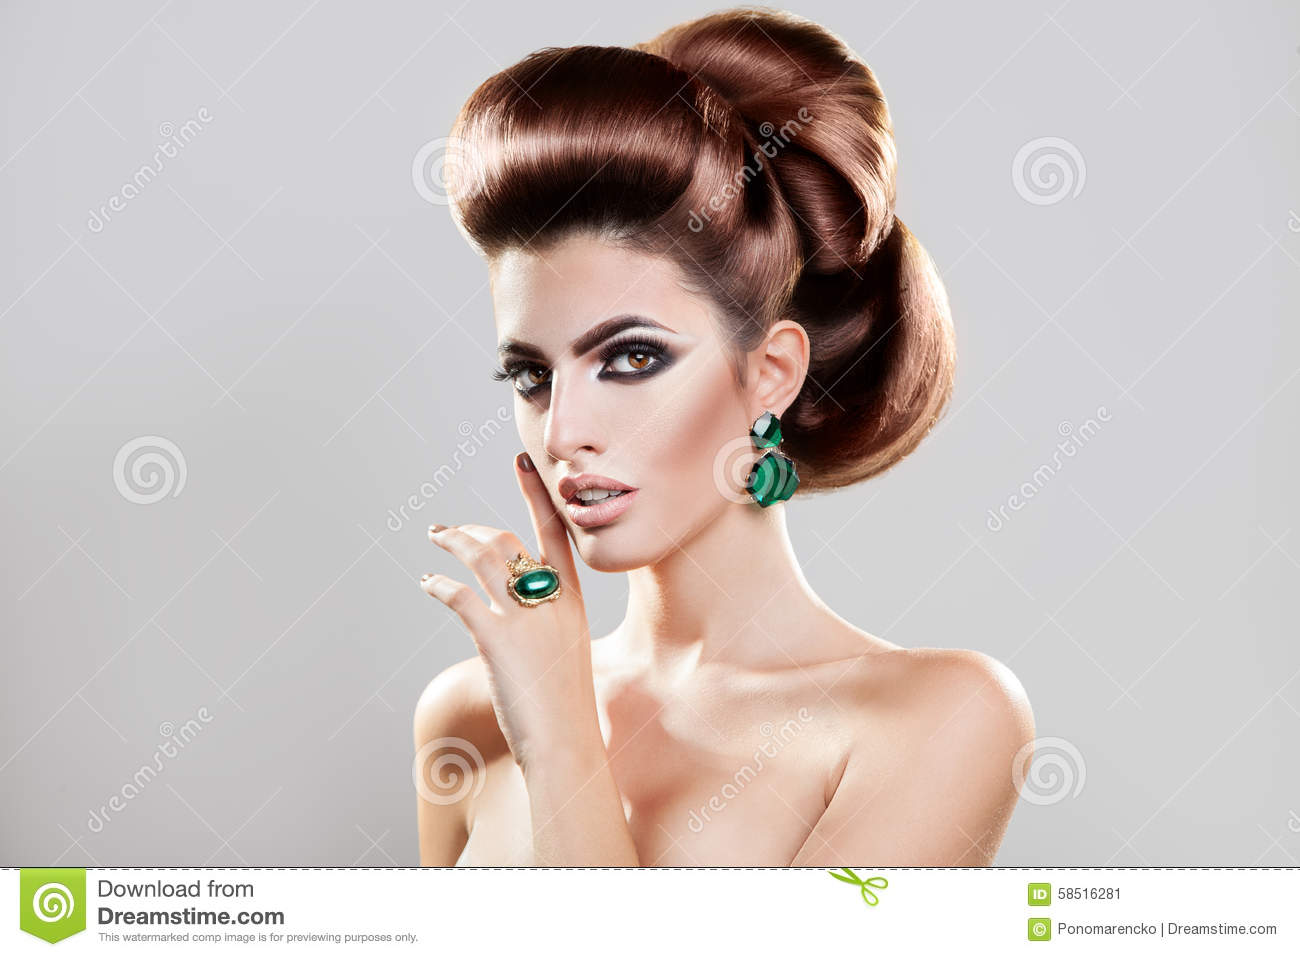 Lovely young girl with creative brown hairstyle and professional